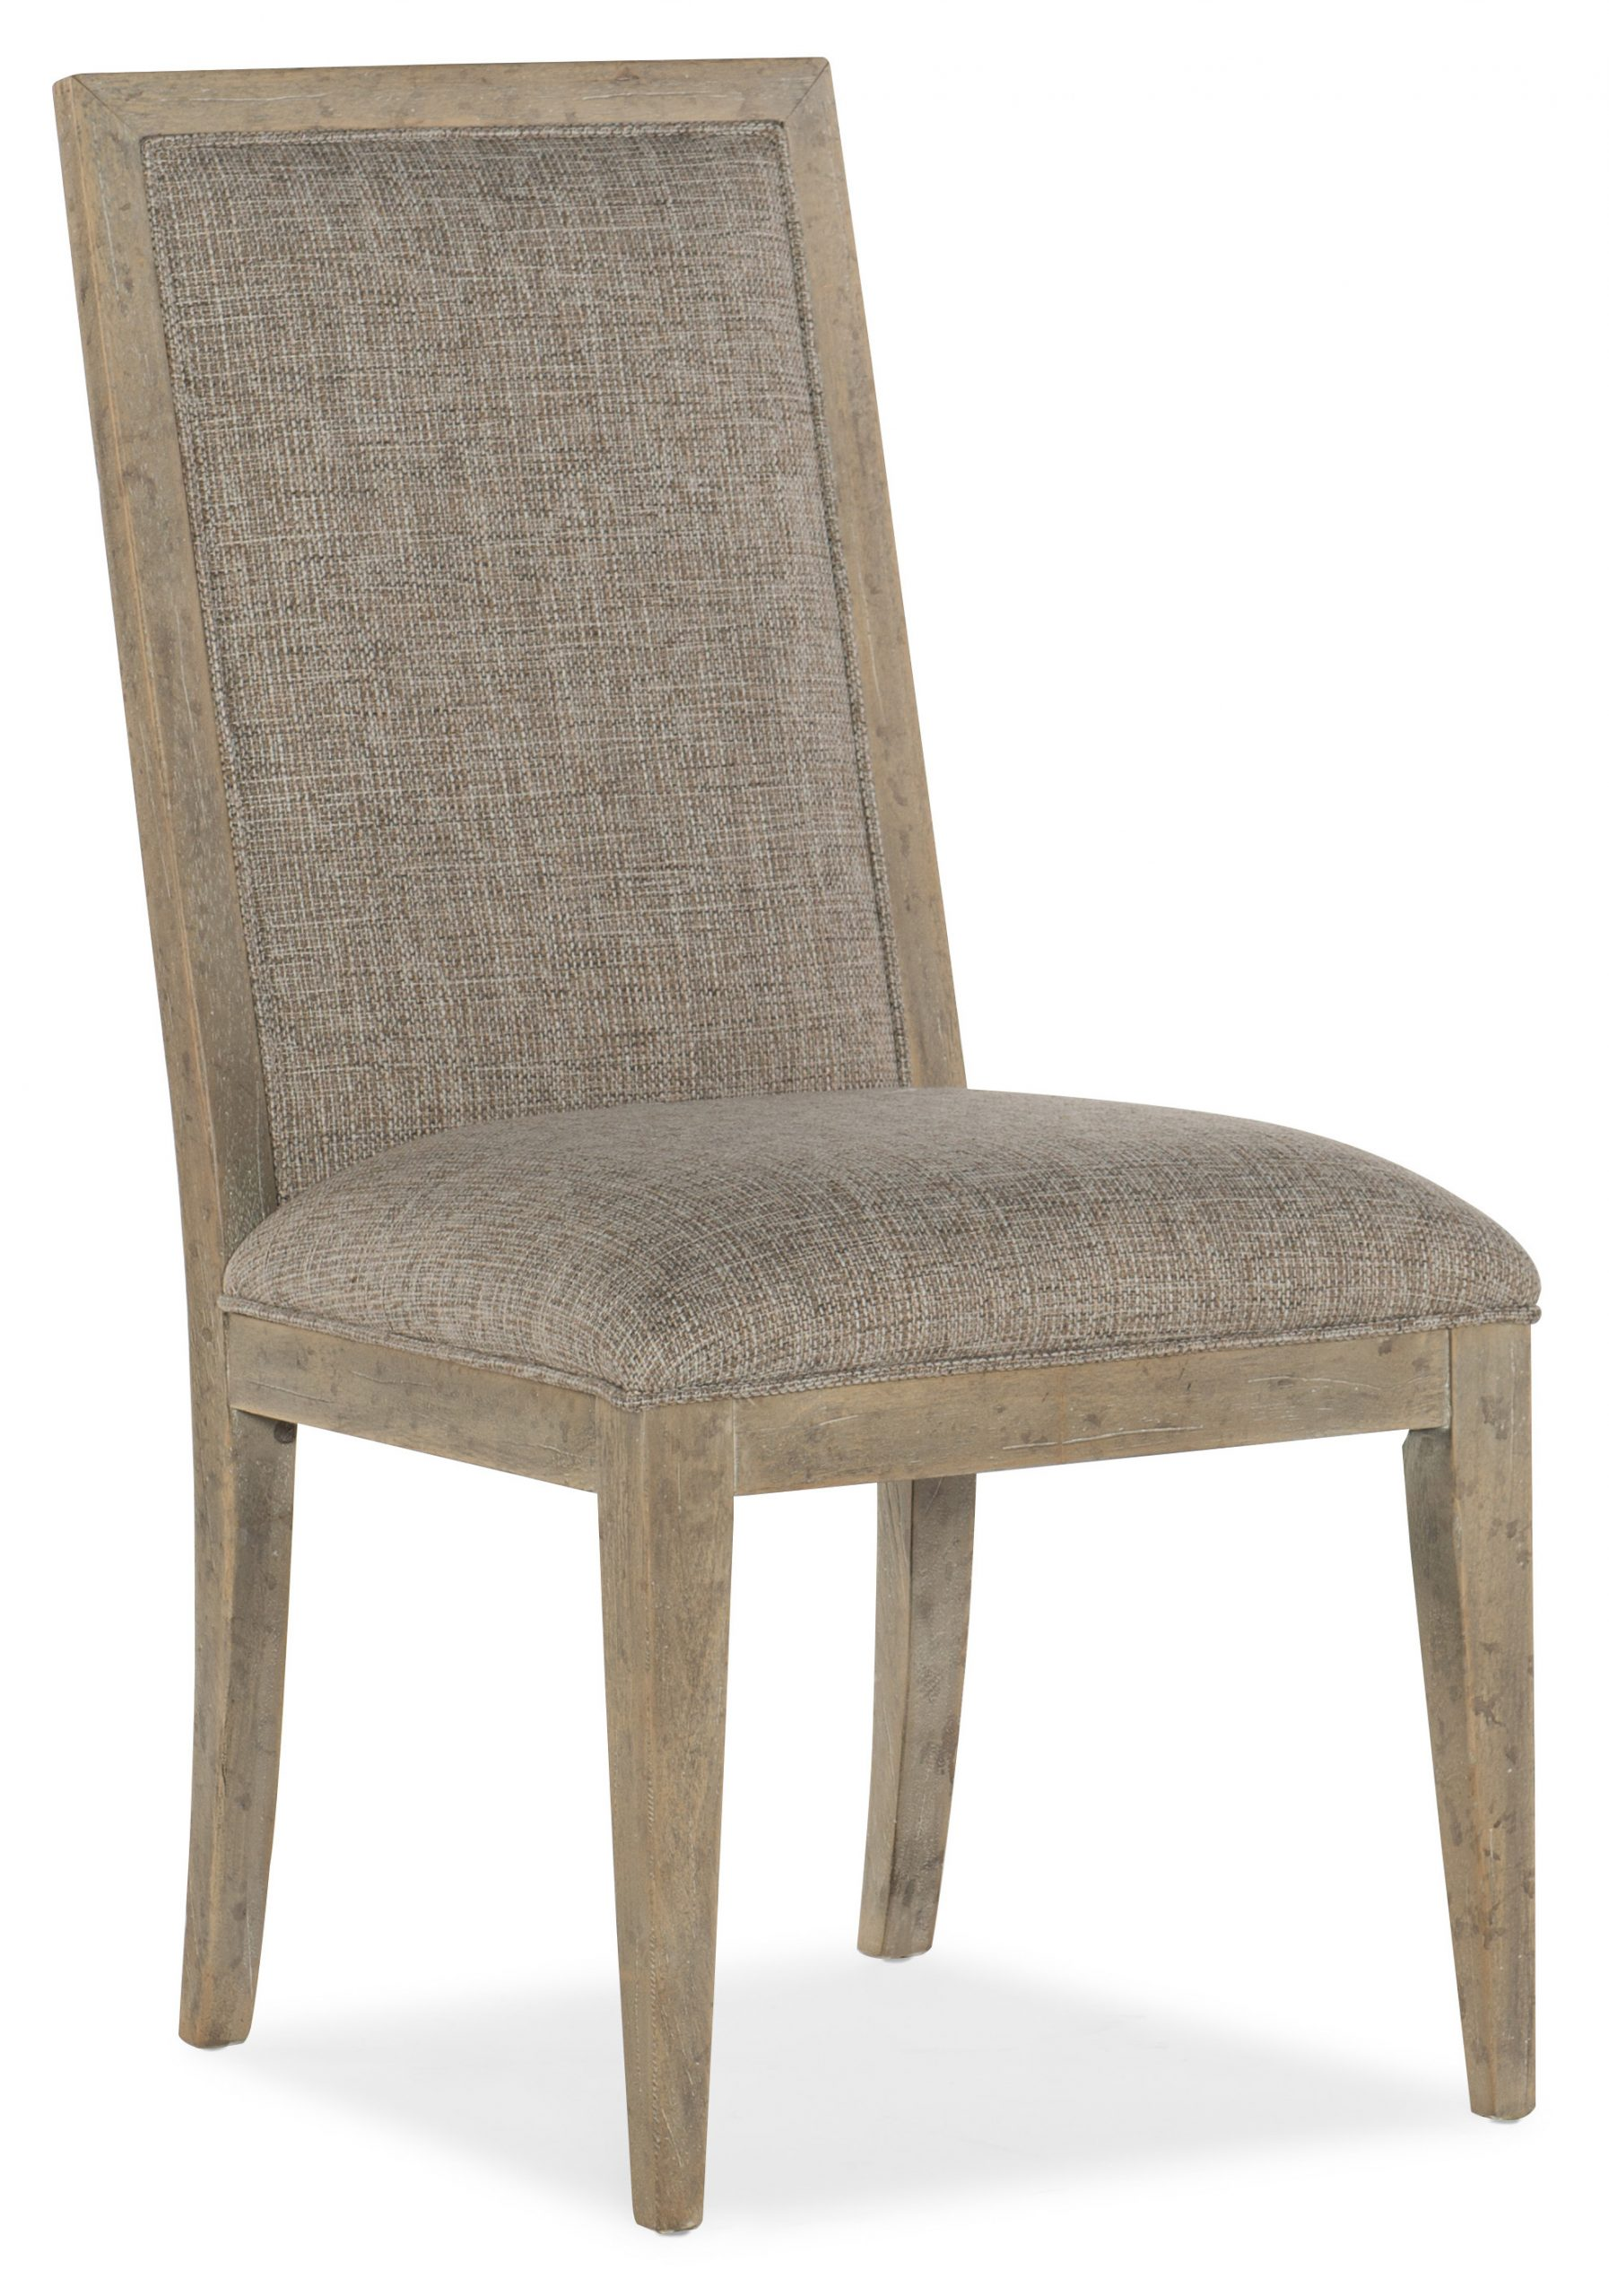 Amani Upholstered Side Chair - 2 per carton/price ea